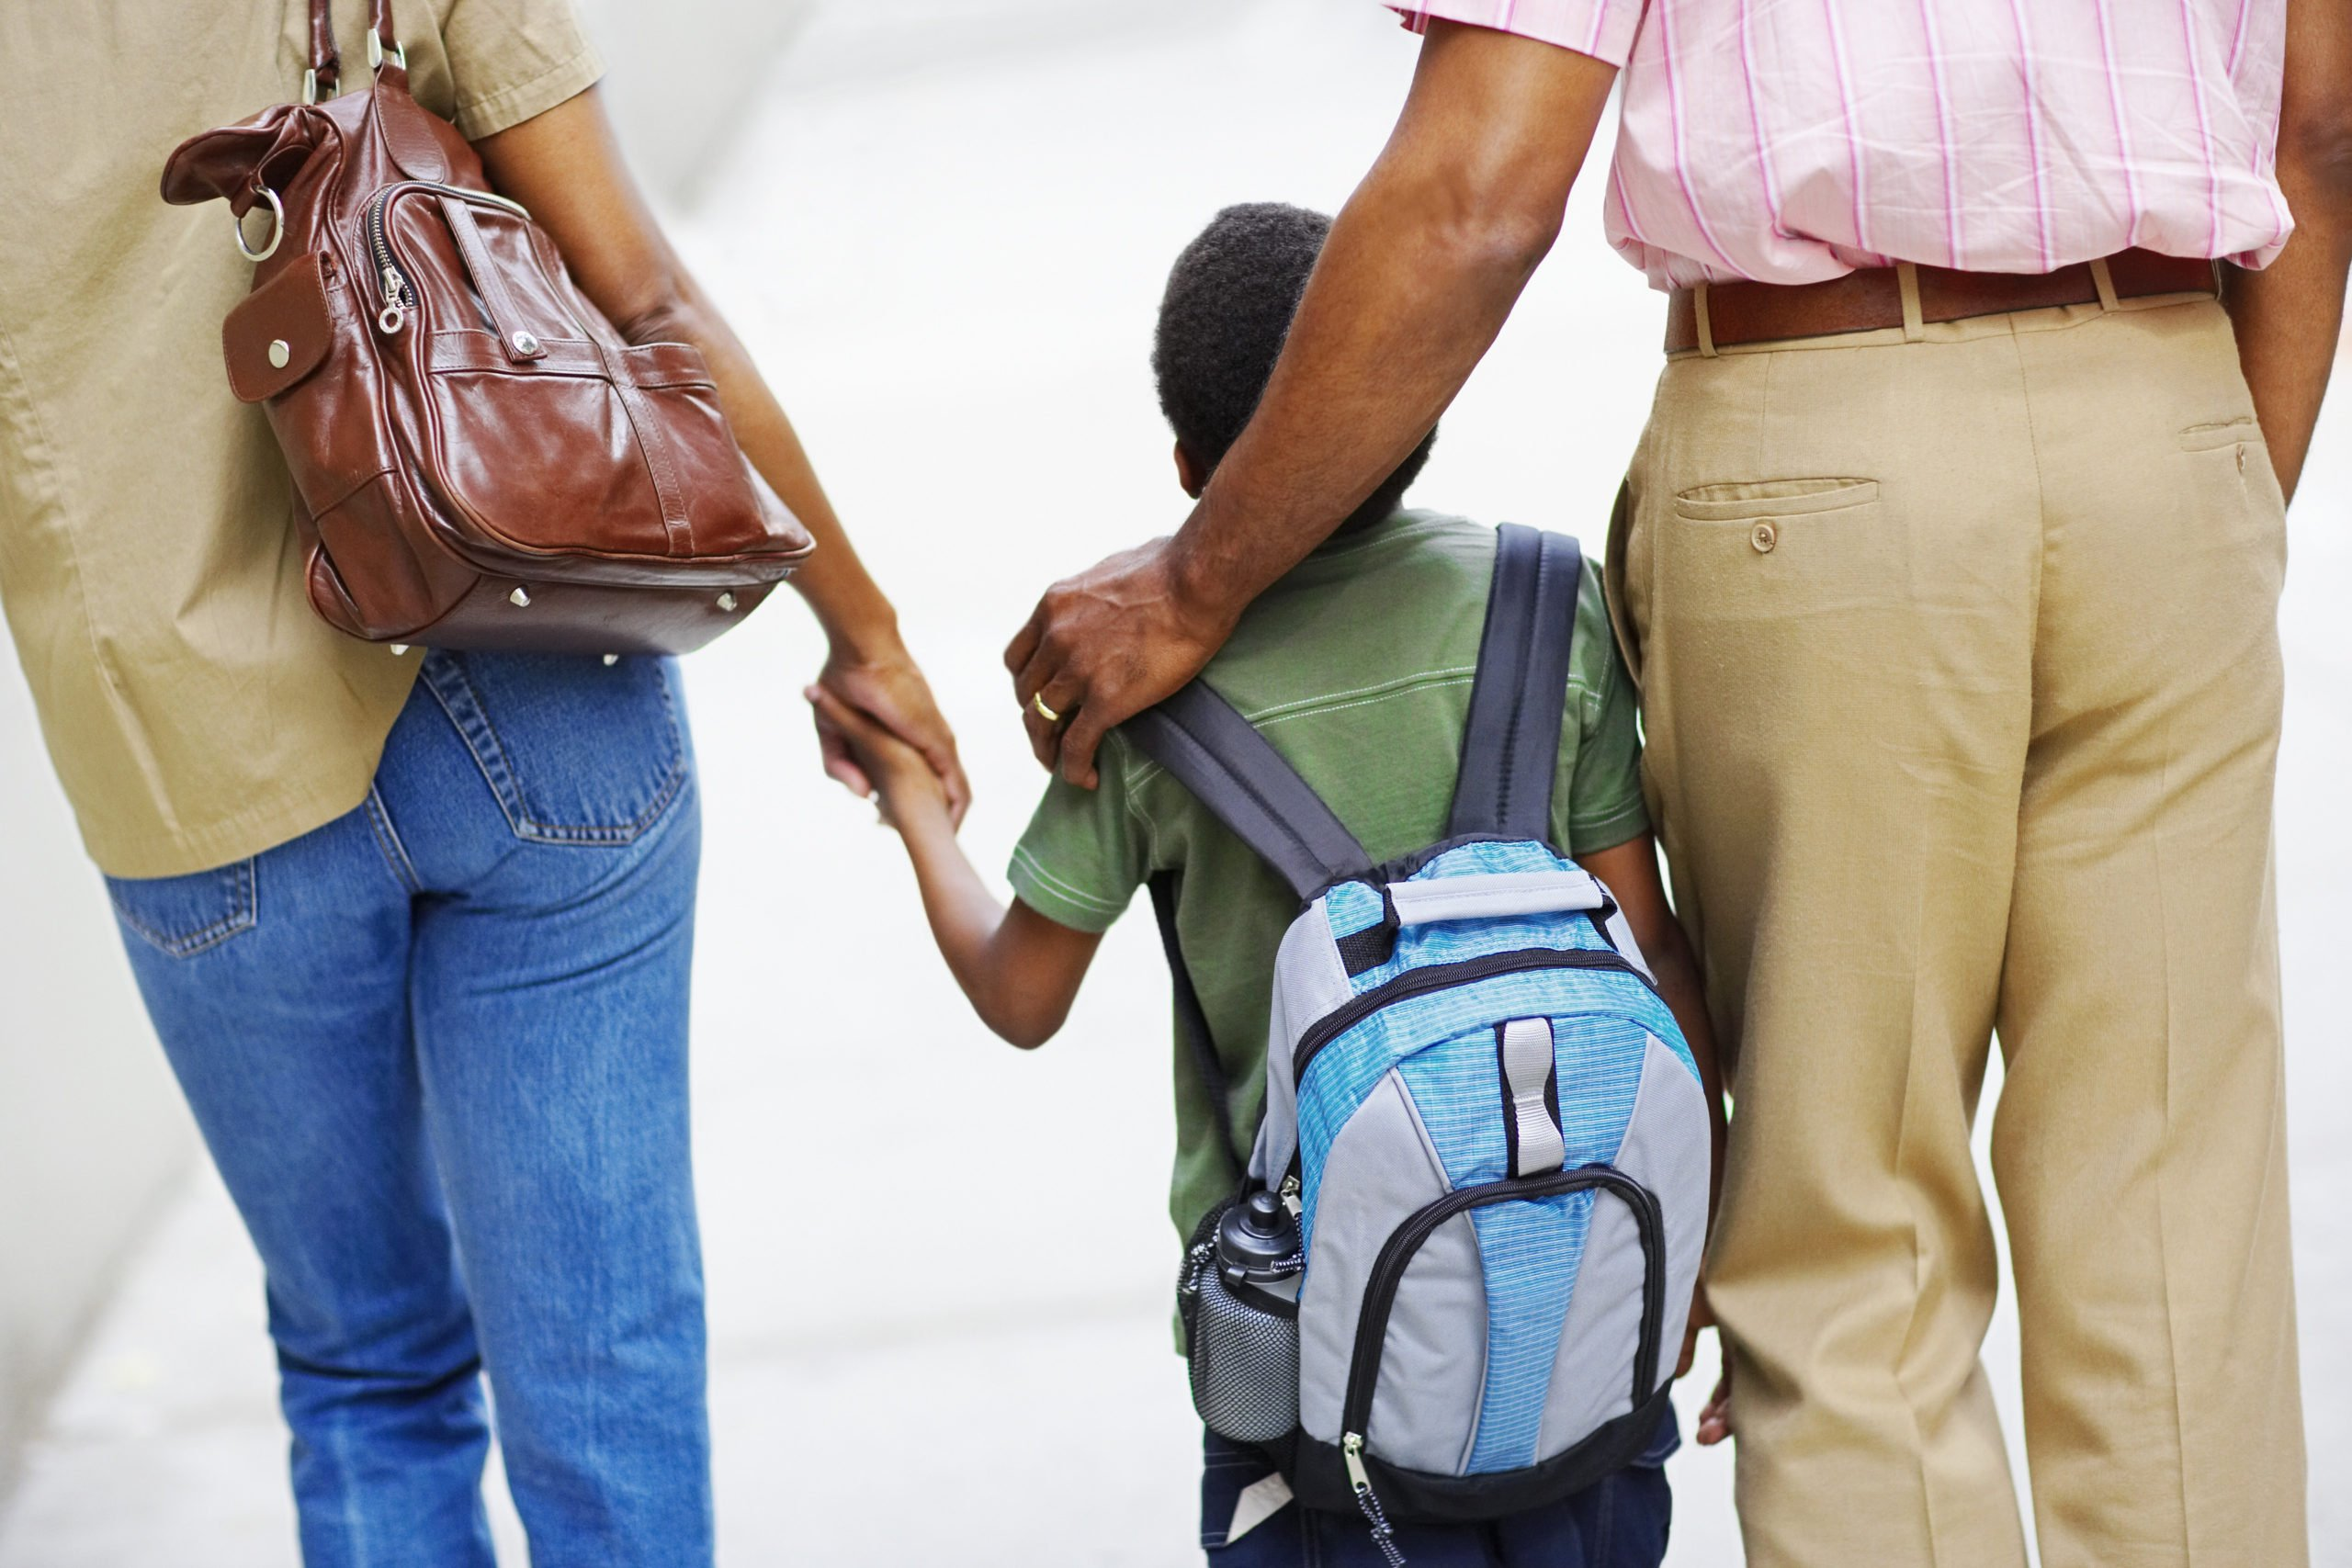 Parents Walking Son to School